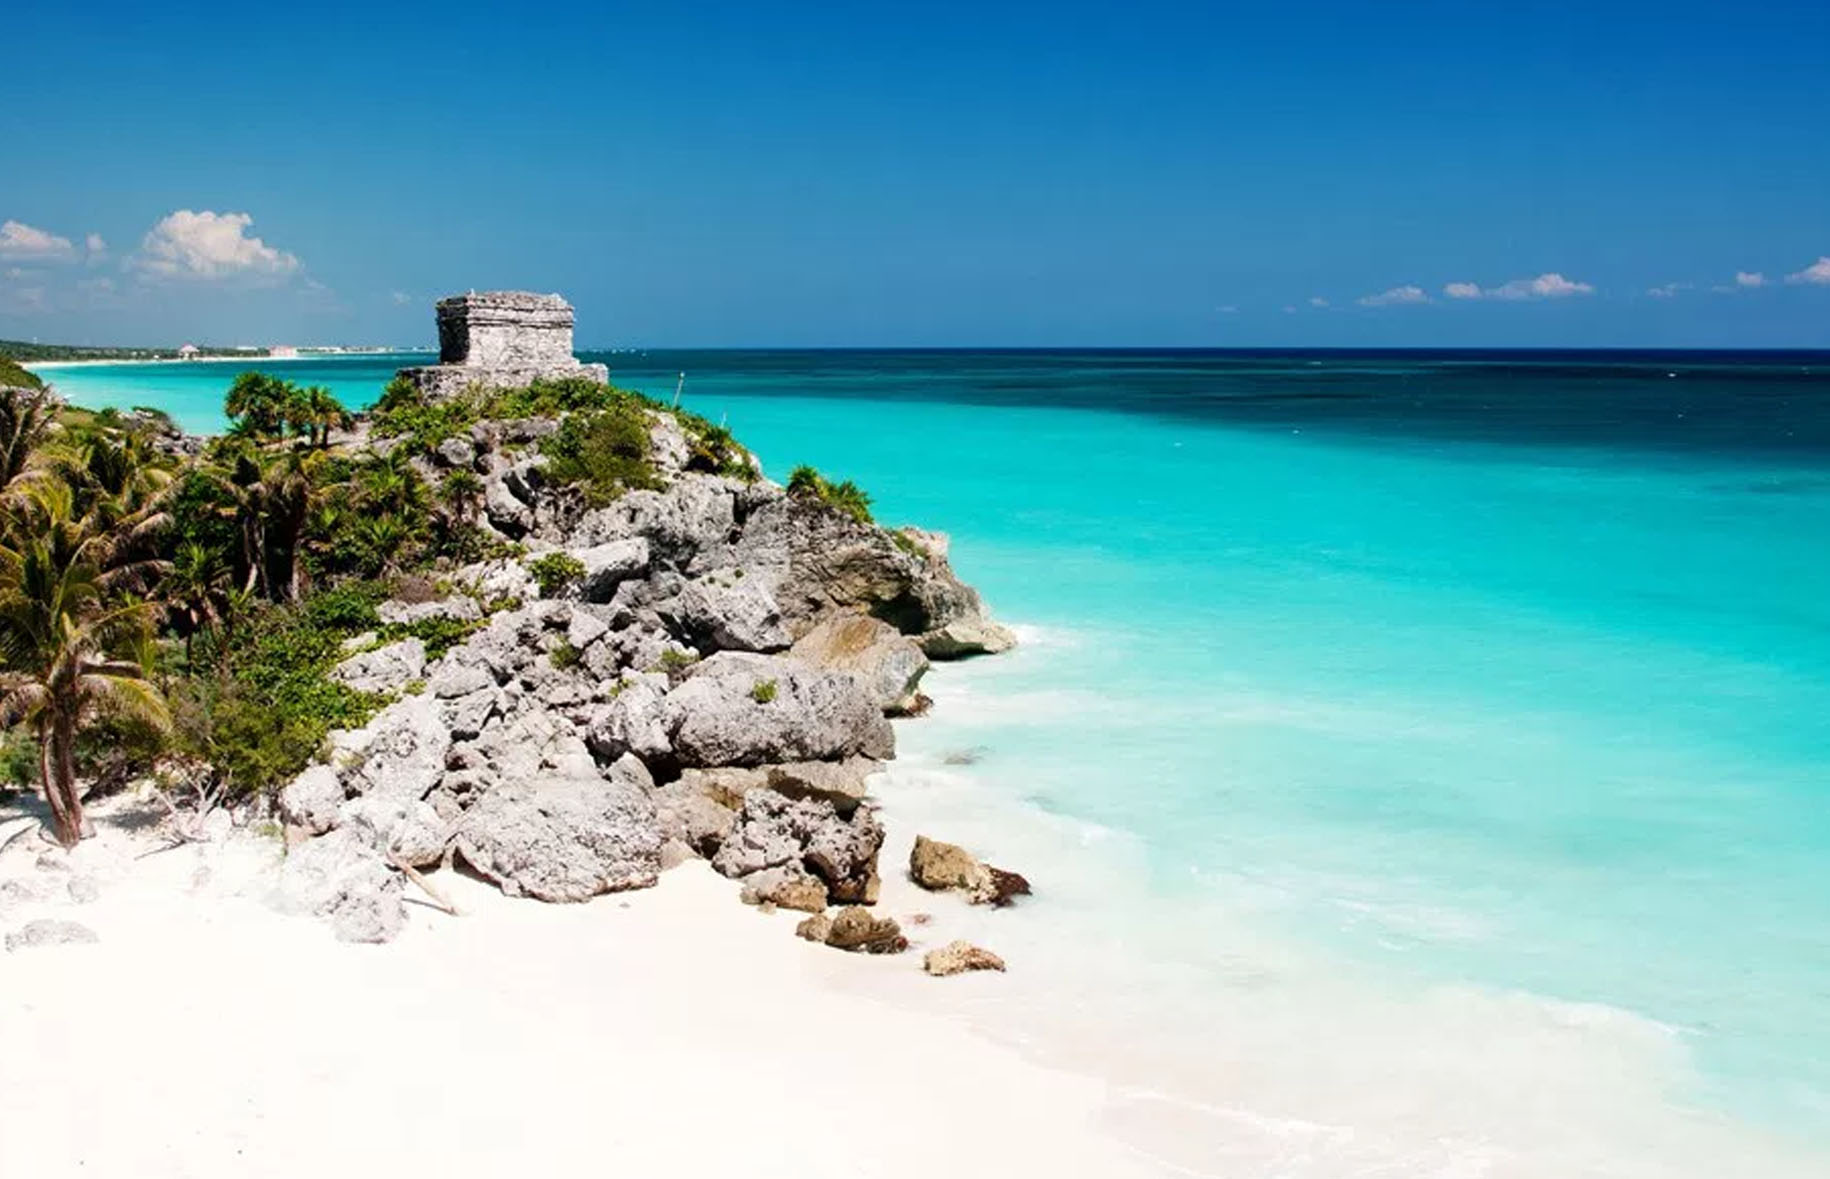 Snap in Dentures - What can you do in Tulum?